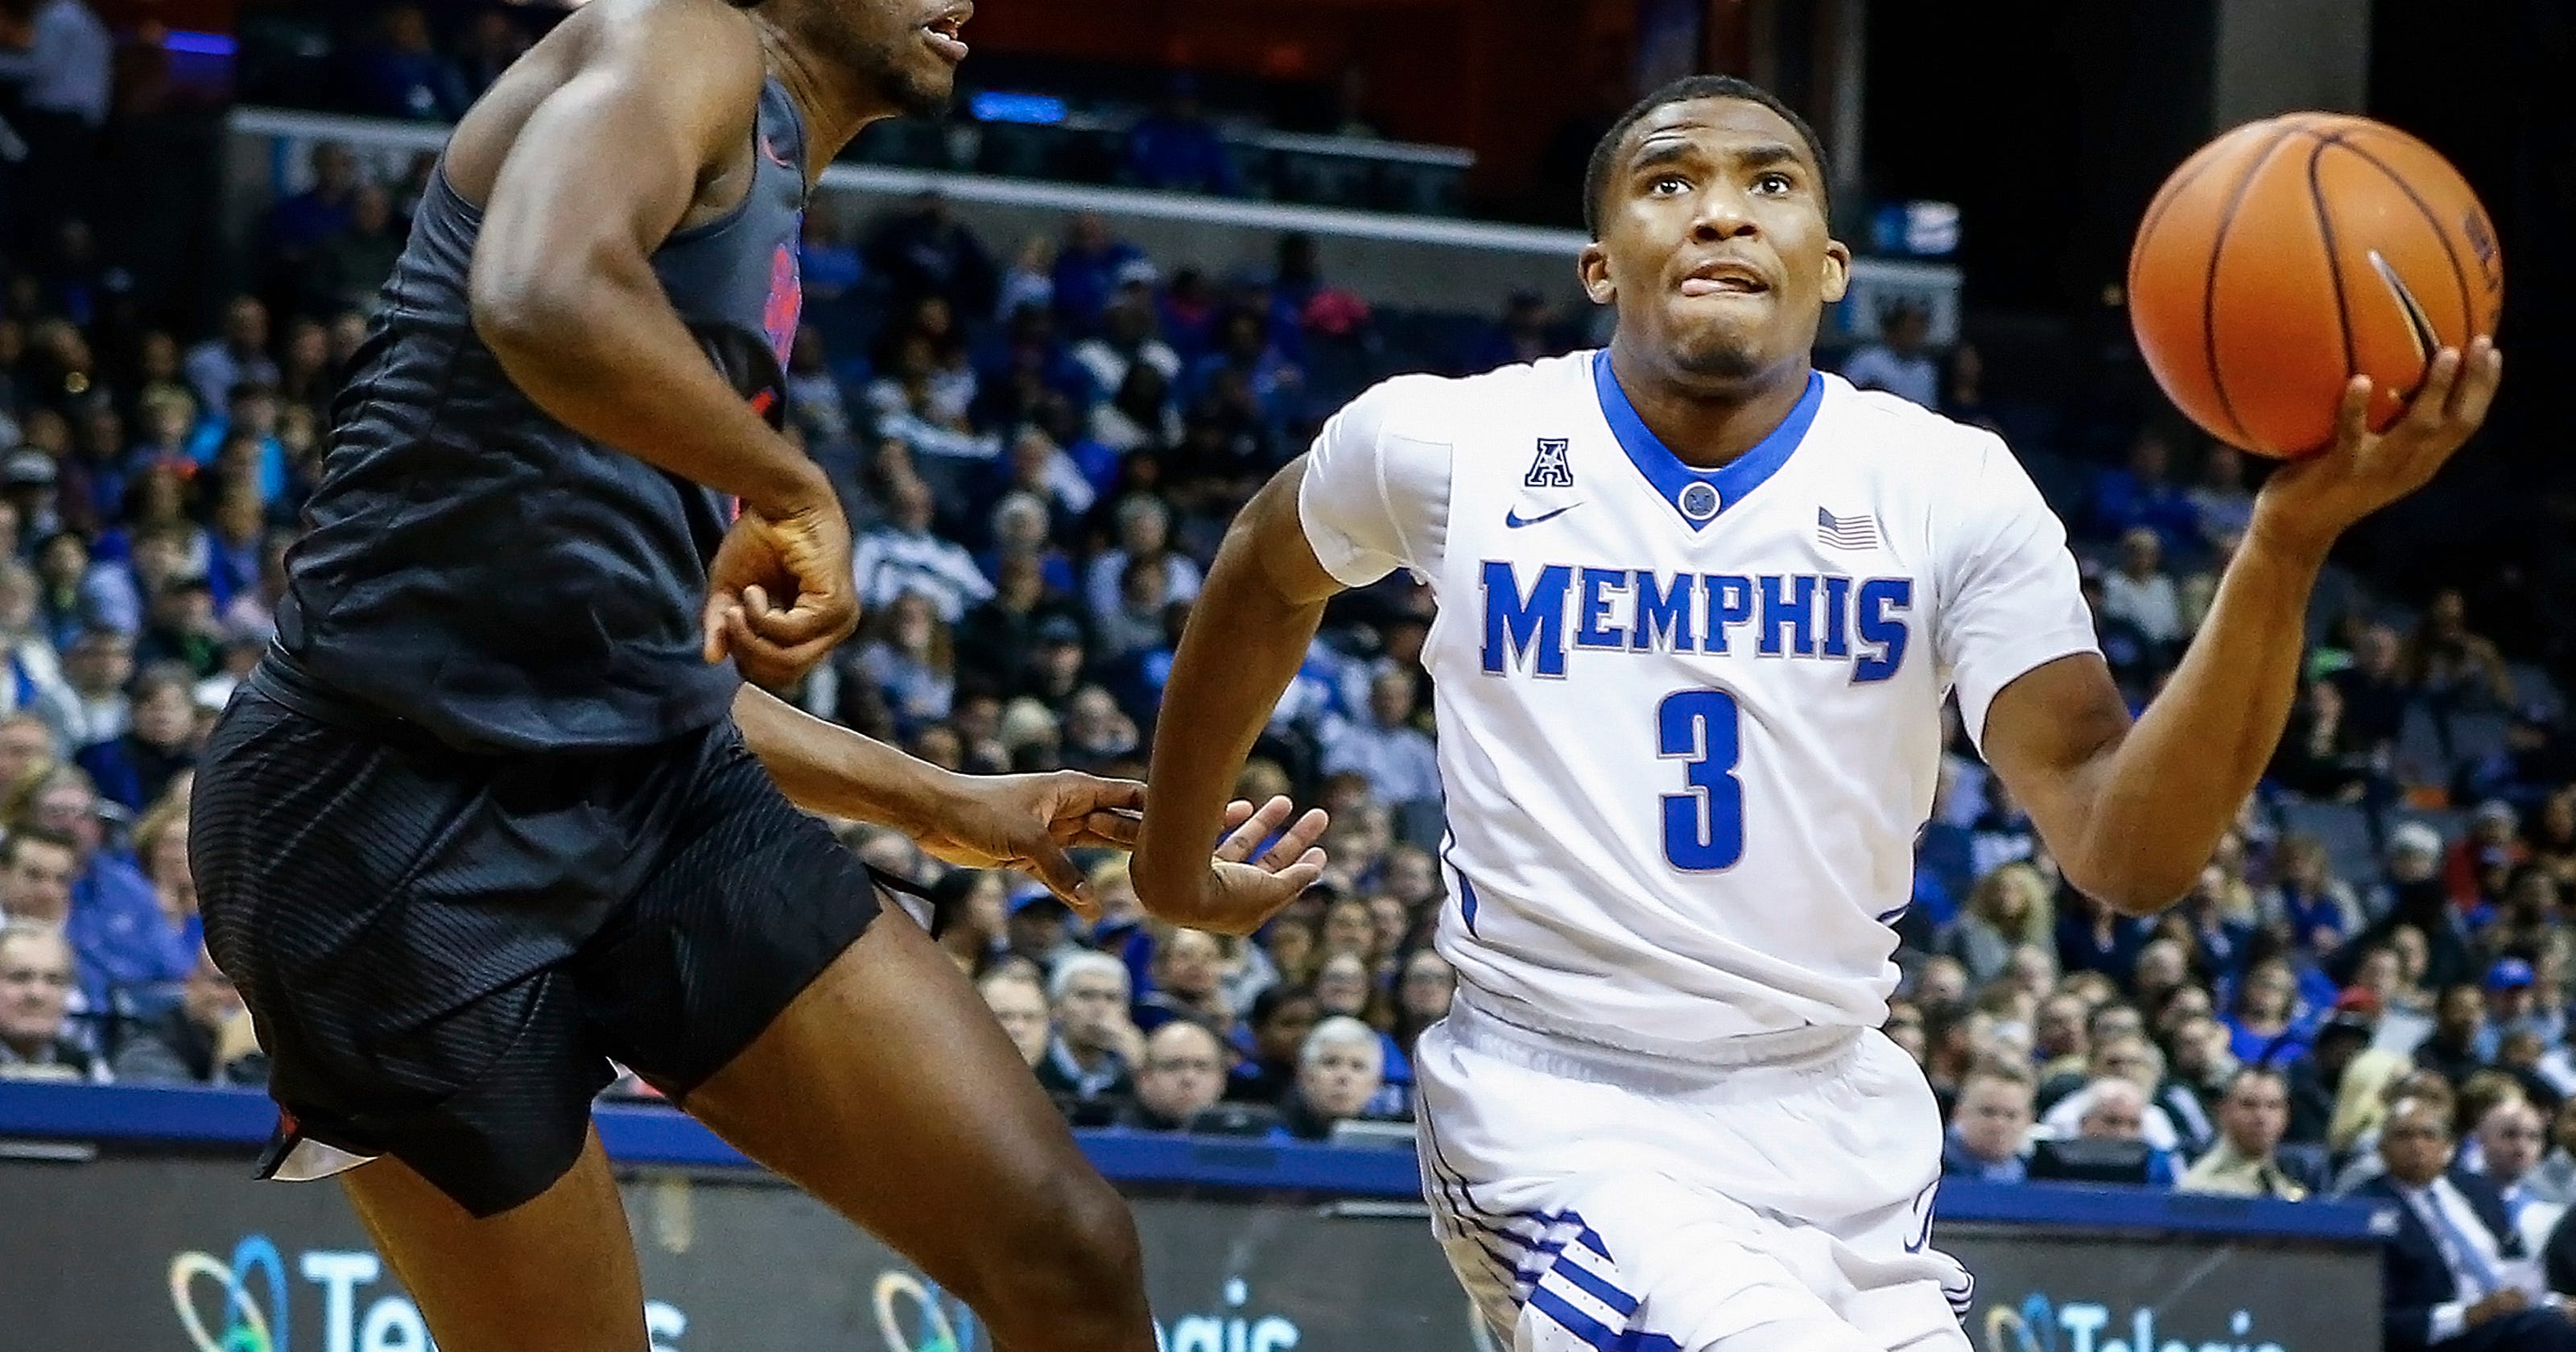 memphis tigers basketball 2017-18 schedule revealed: four things to know